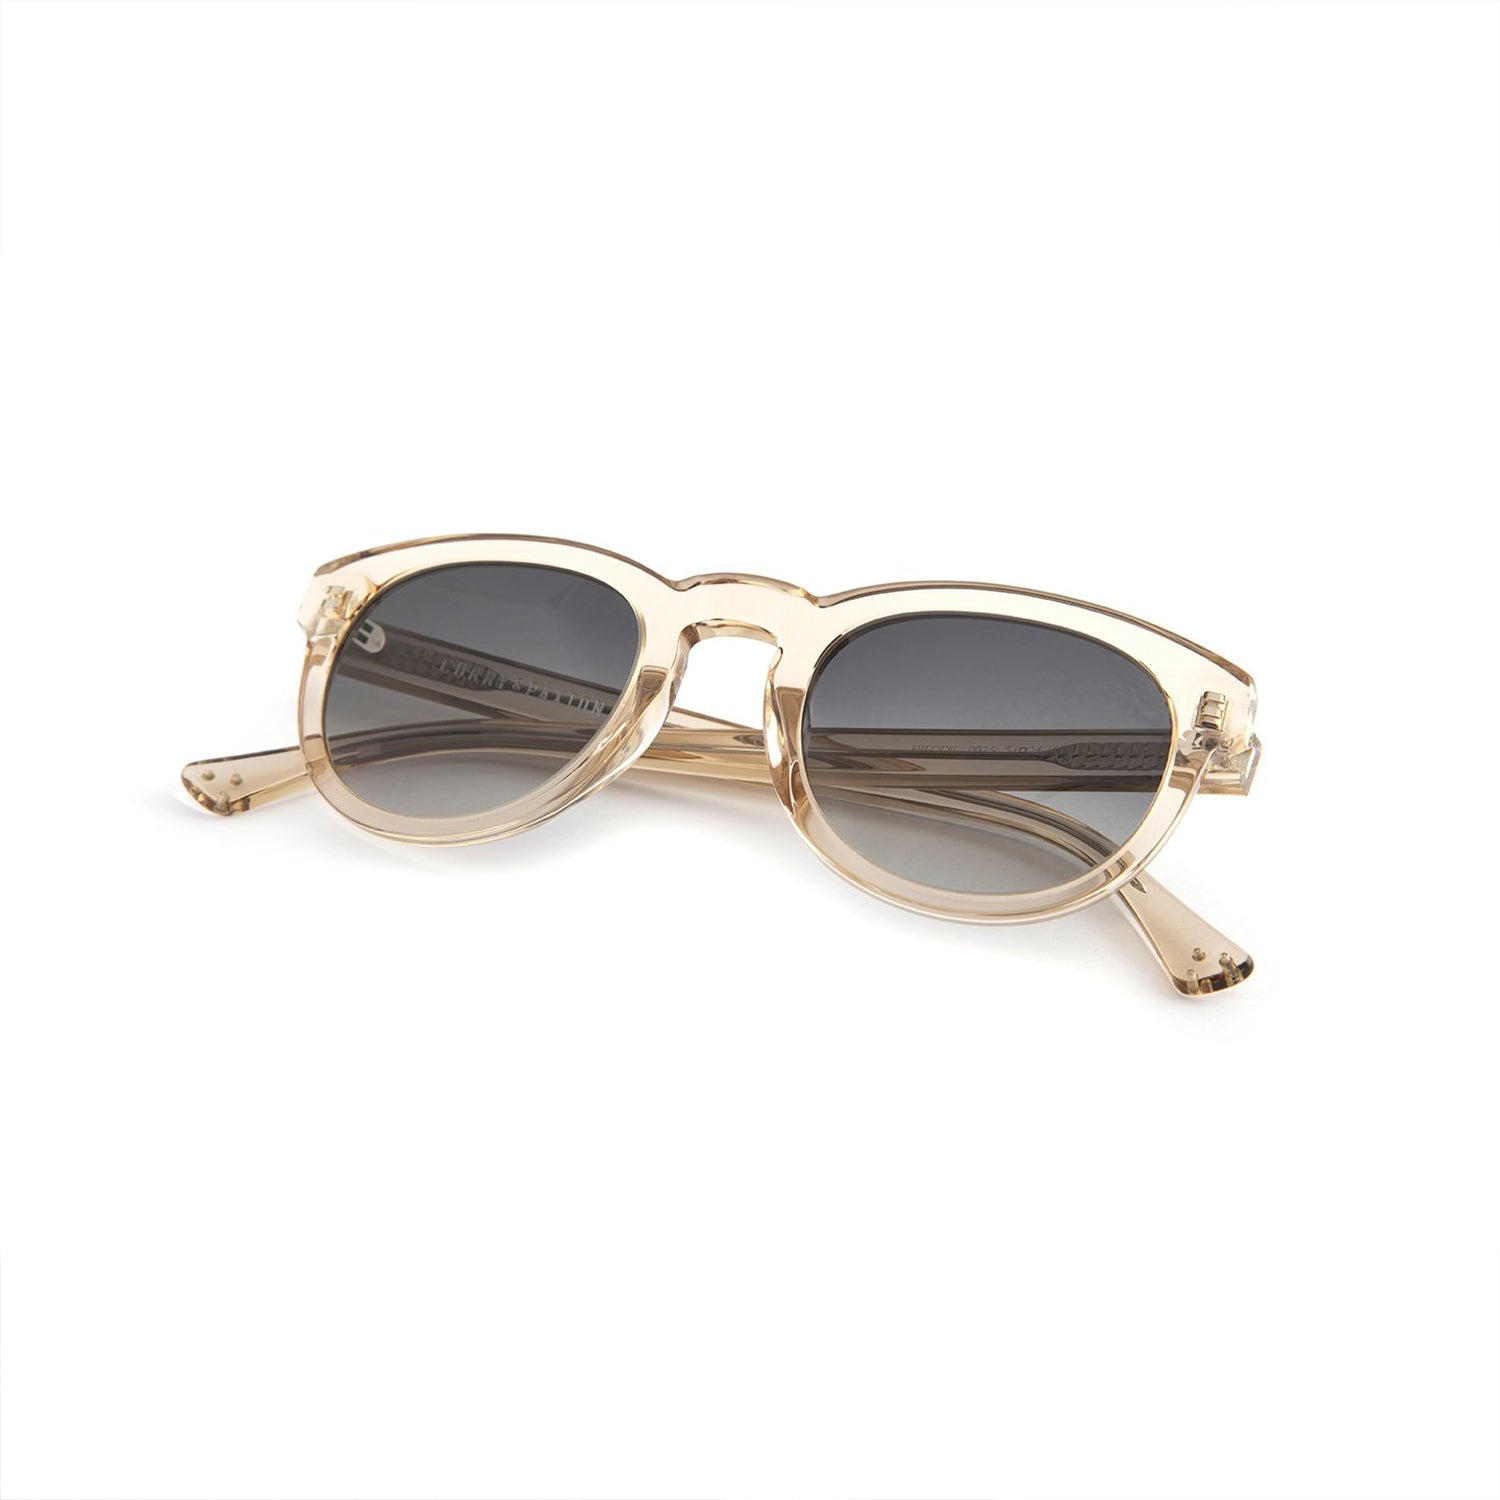 FREDDIE - CURRY & PAXTON SUNGLASSES (CHAMPAGNE/GREY)